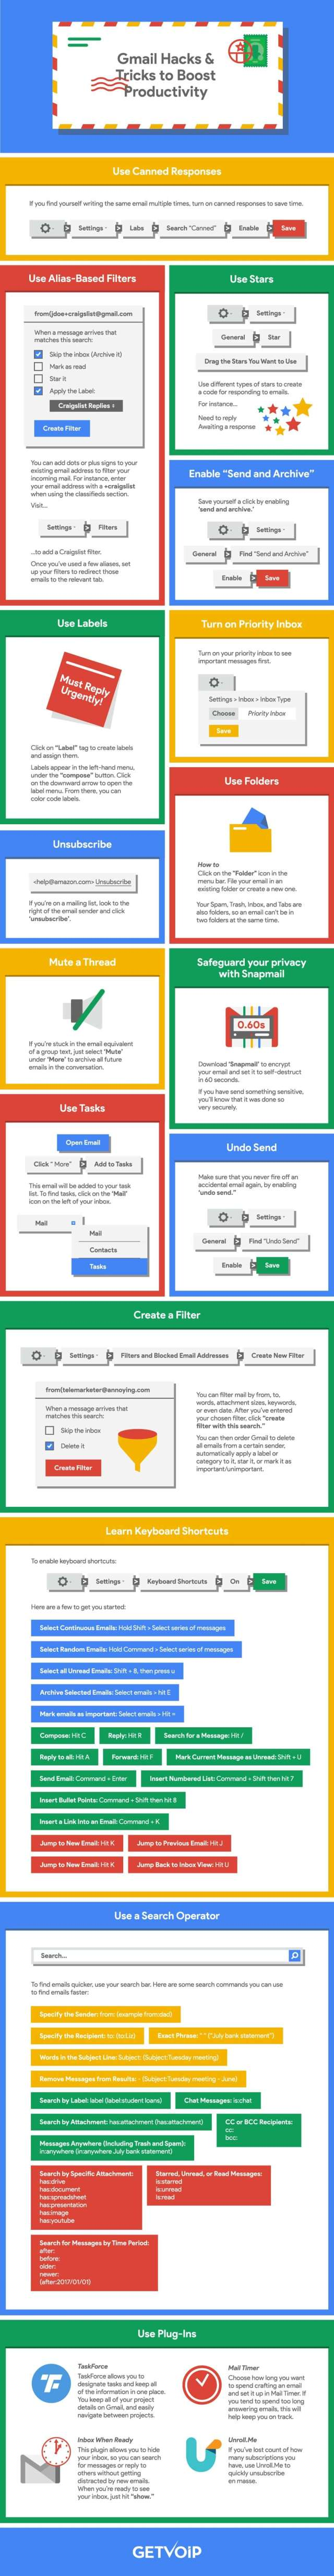 Gmail Tips Infographic compressed